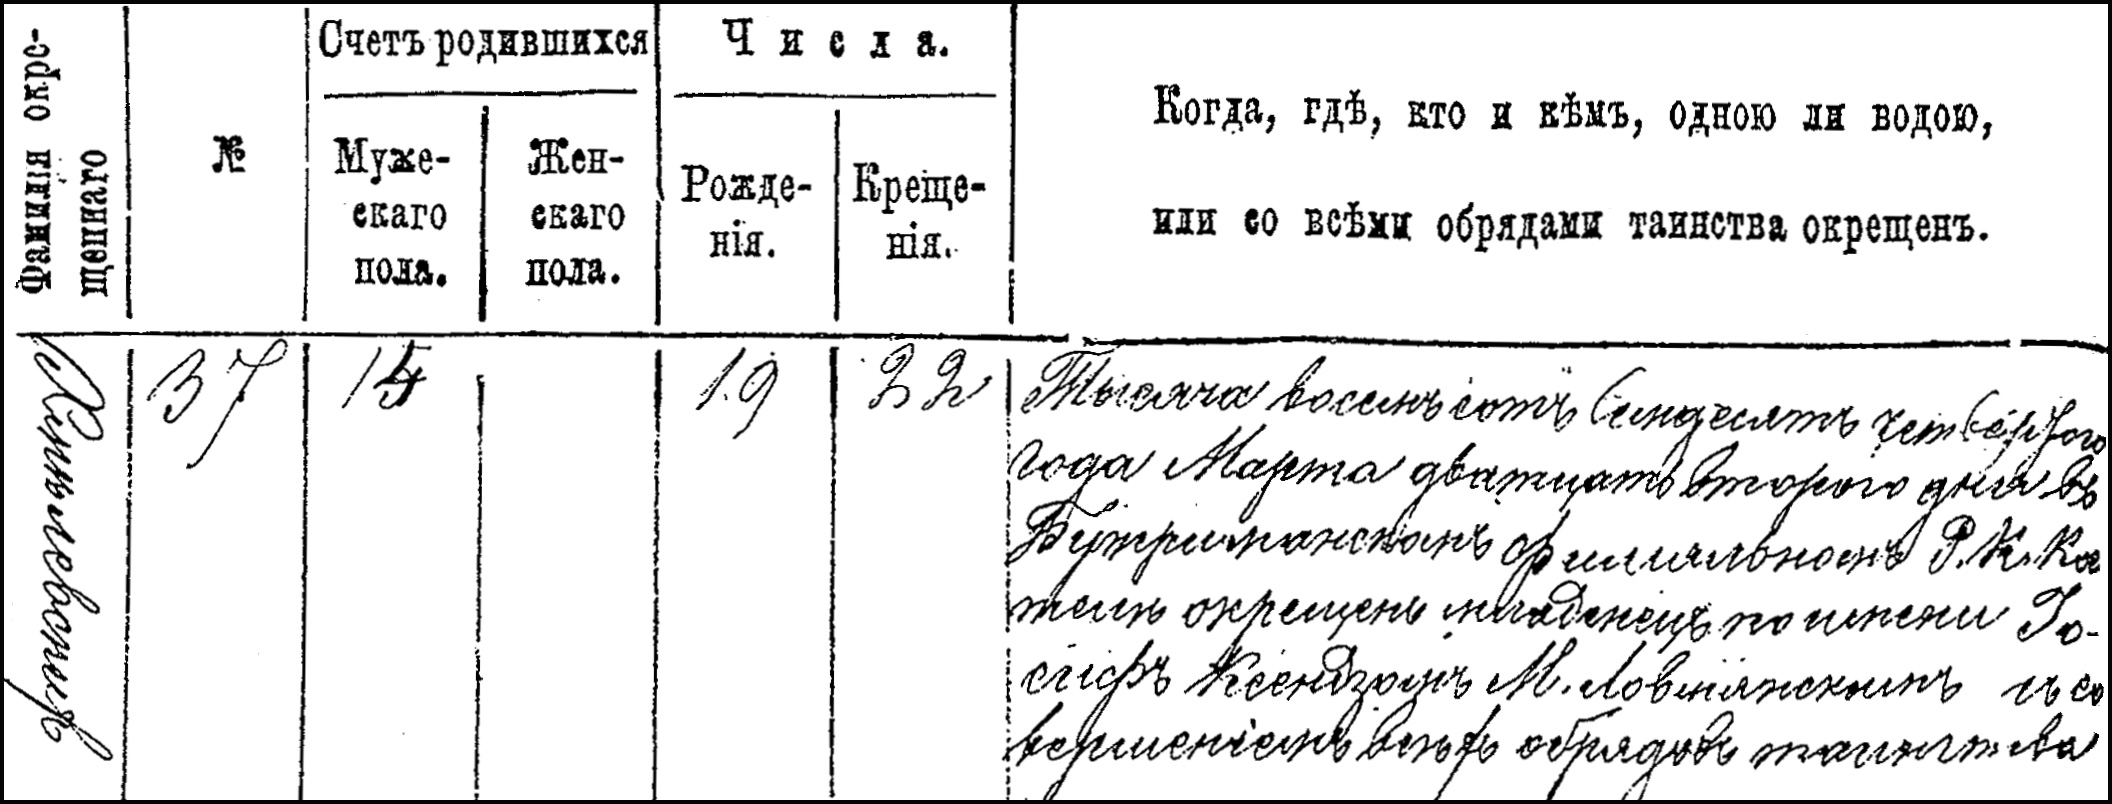 The Birth and Baptismal Record of Jozef Chmielewski - 1874 Left